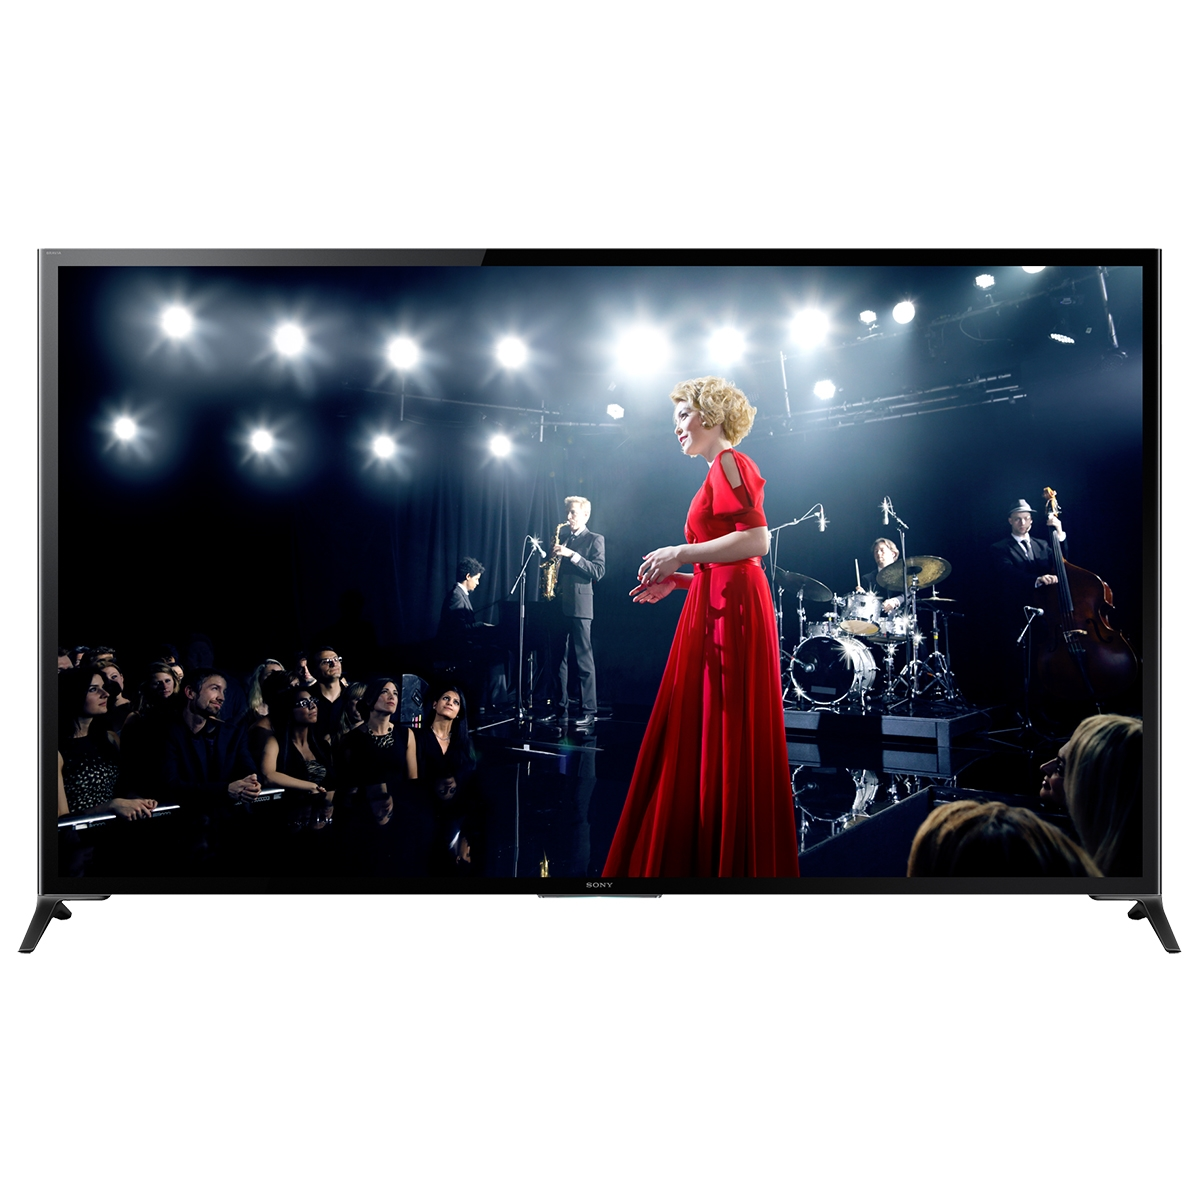 SONY 85INCH CLASS UHD 4K LED SMART HDTV - XBR85X950B - RESIDENTIAL USA VERSION -SONY ORIGINAL PANEL - FULL ONE YEAR MANUFACTURERS WARRANTY!